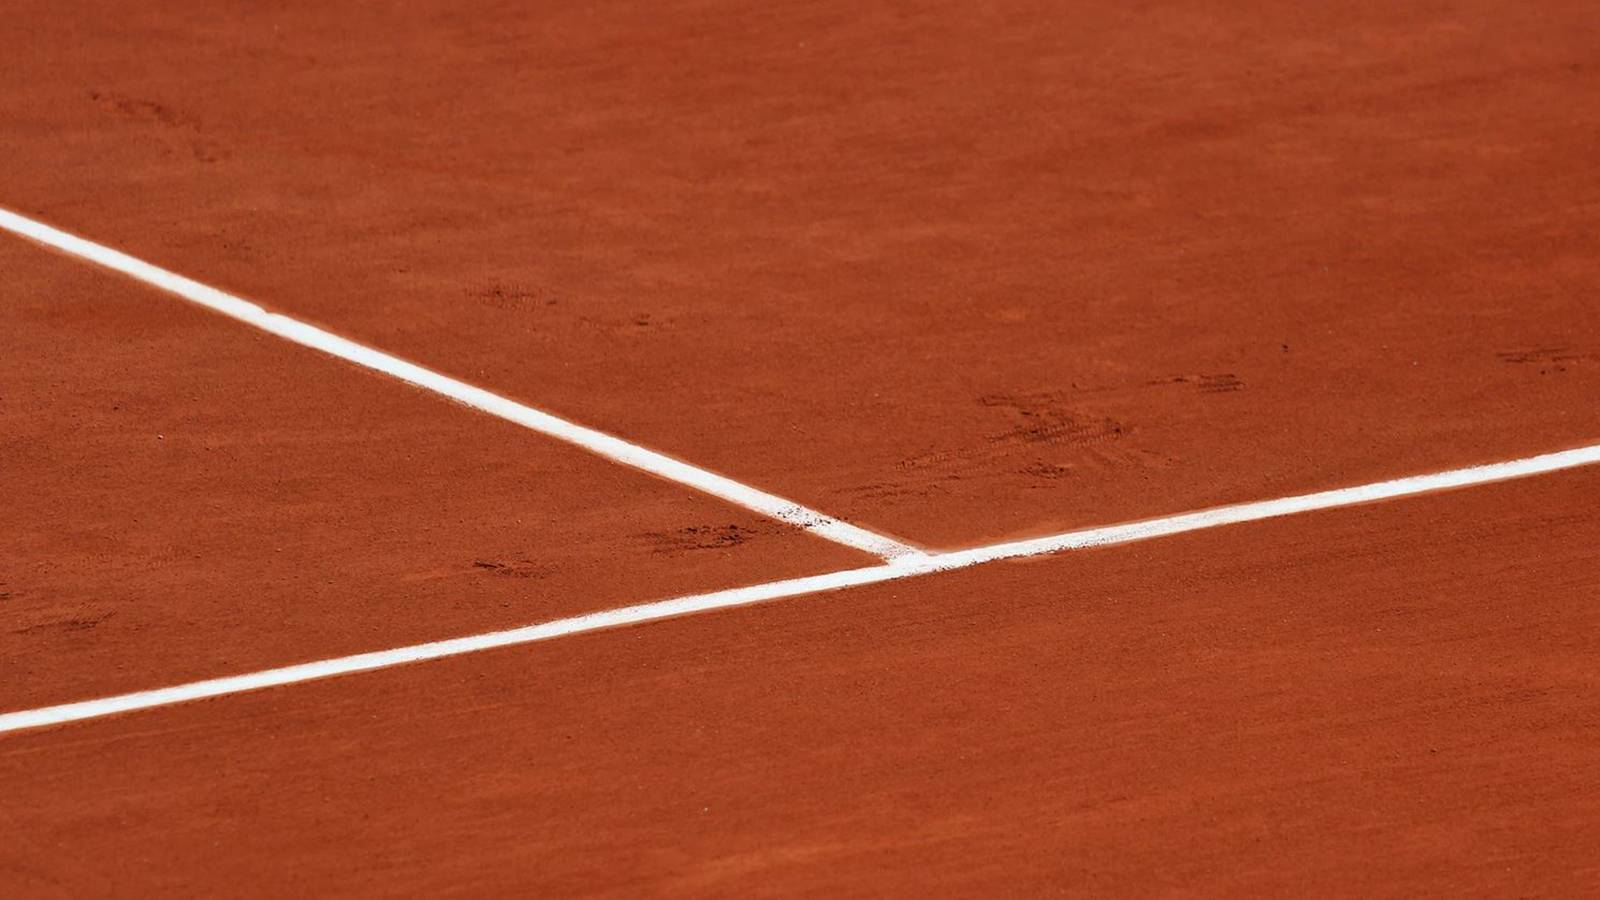 2020 US Mens Clay Court Championships (Rescheduled from 4/11/2020)